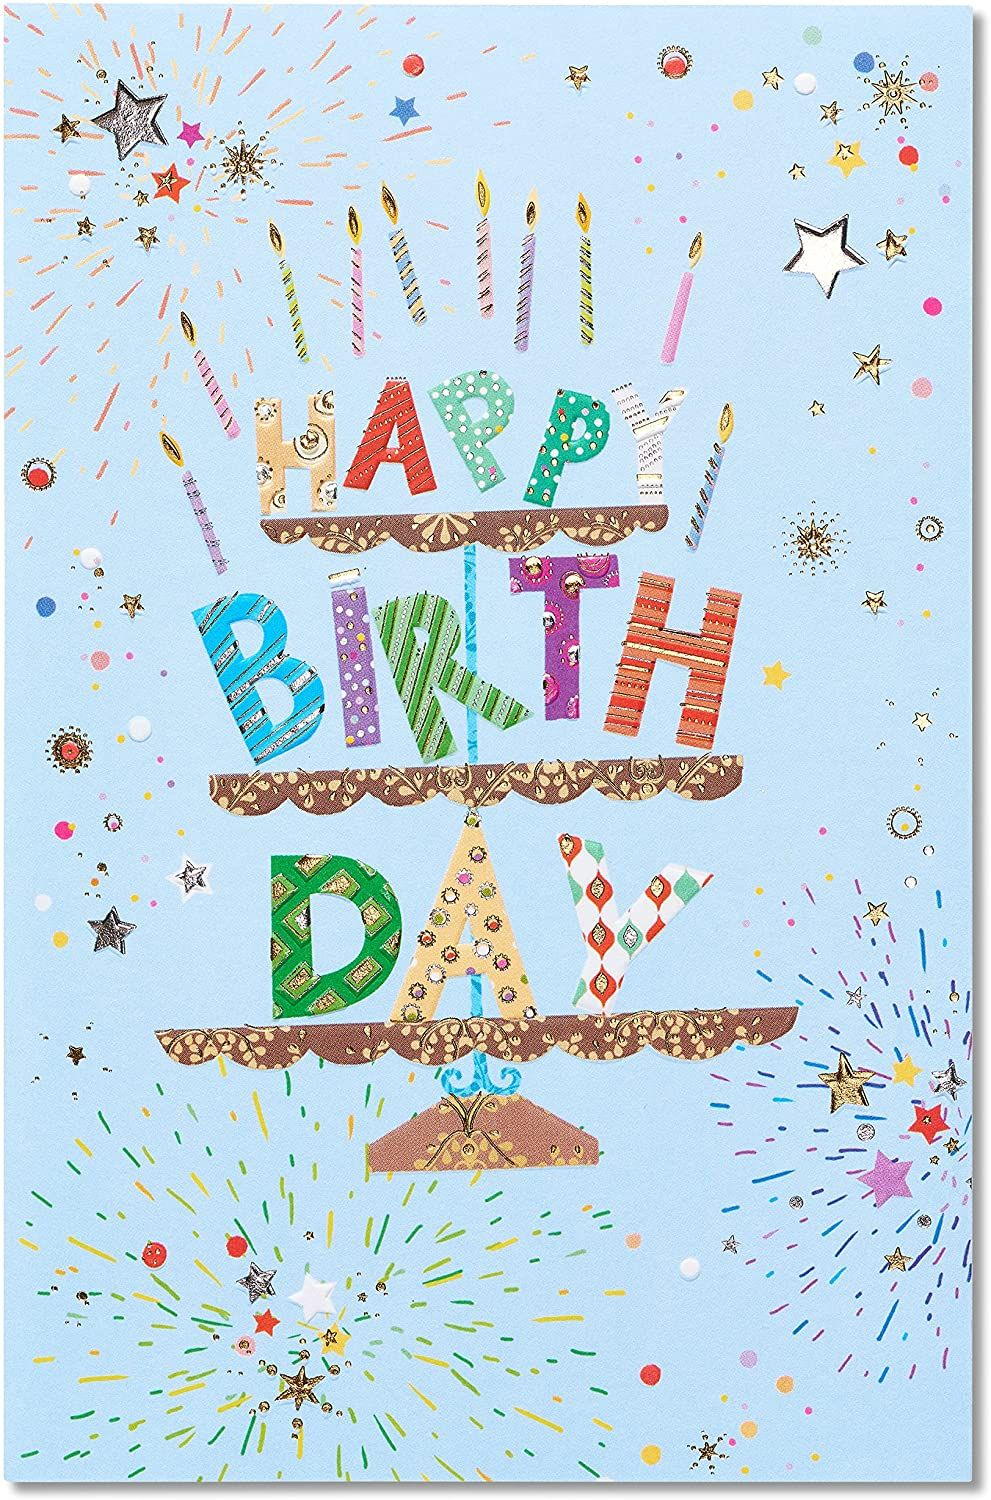 American greetings birthday card for him amazing guy in